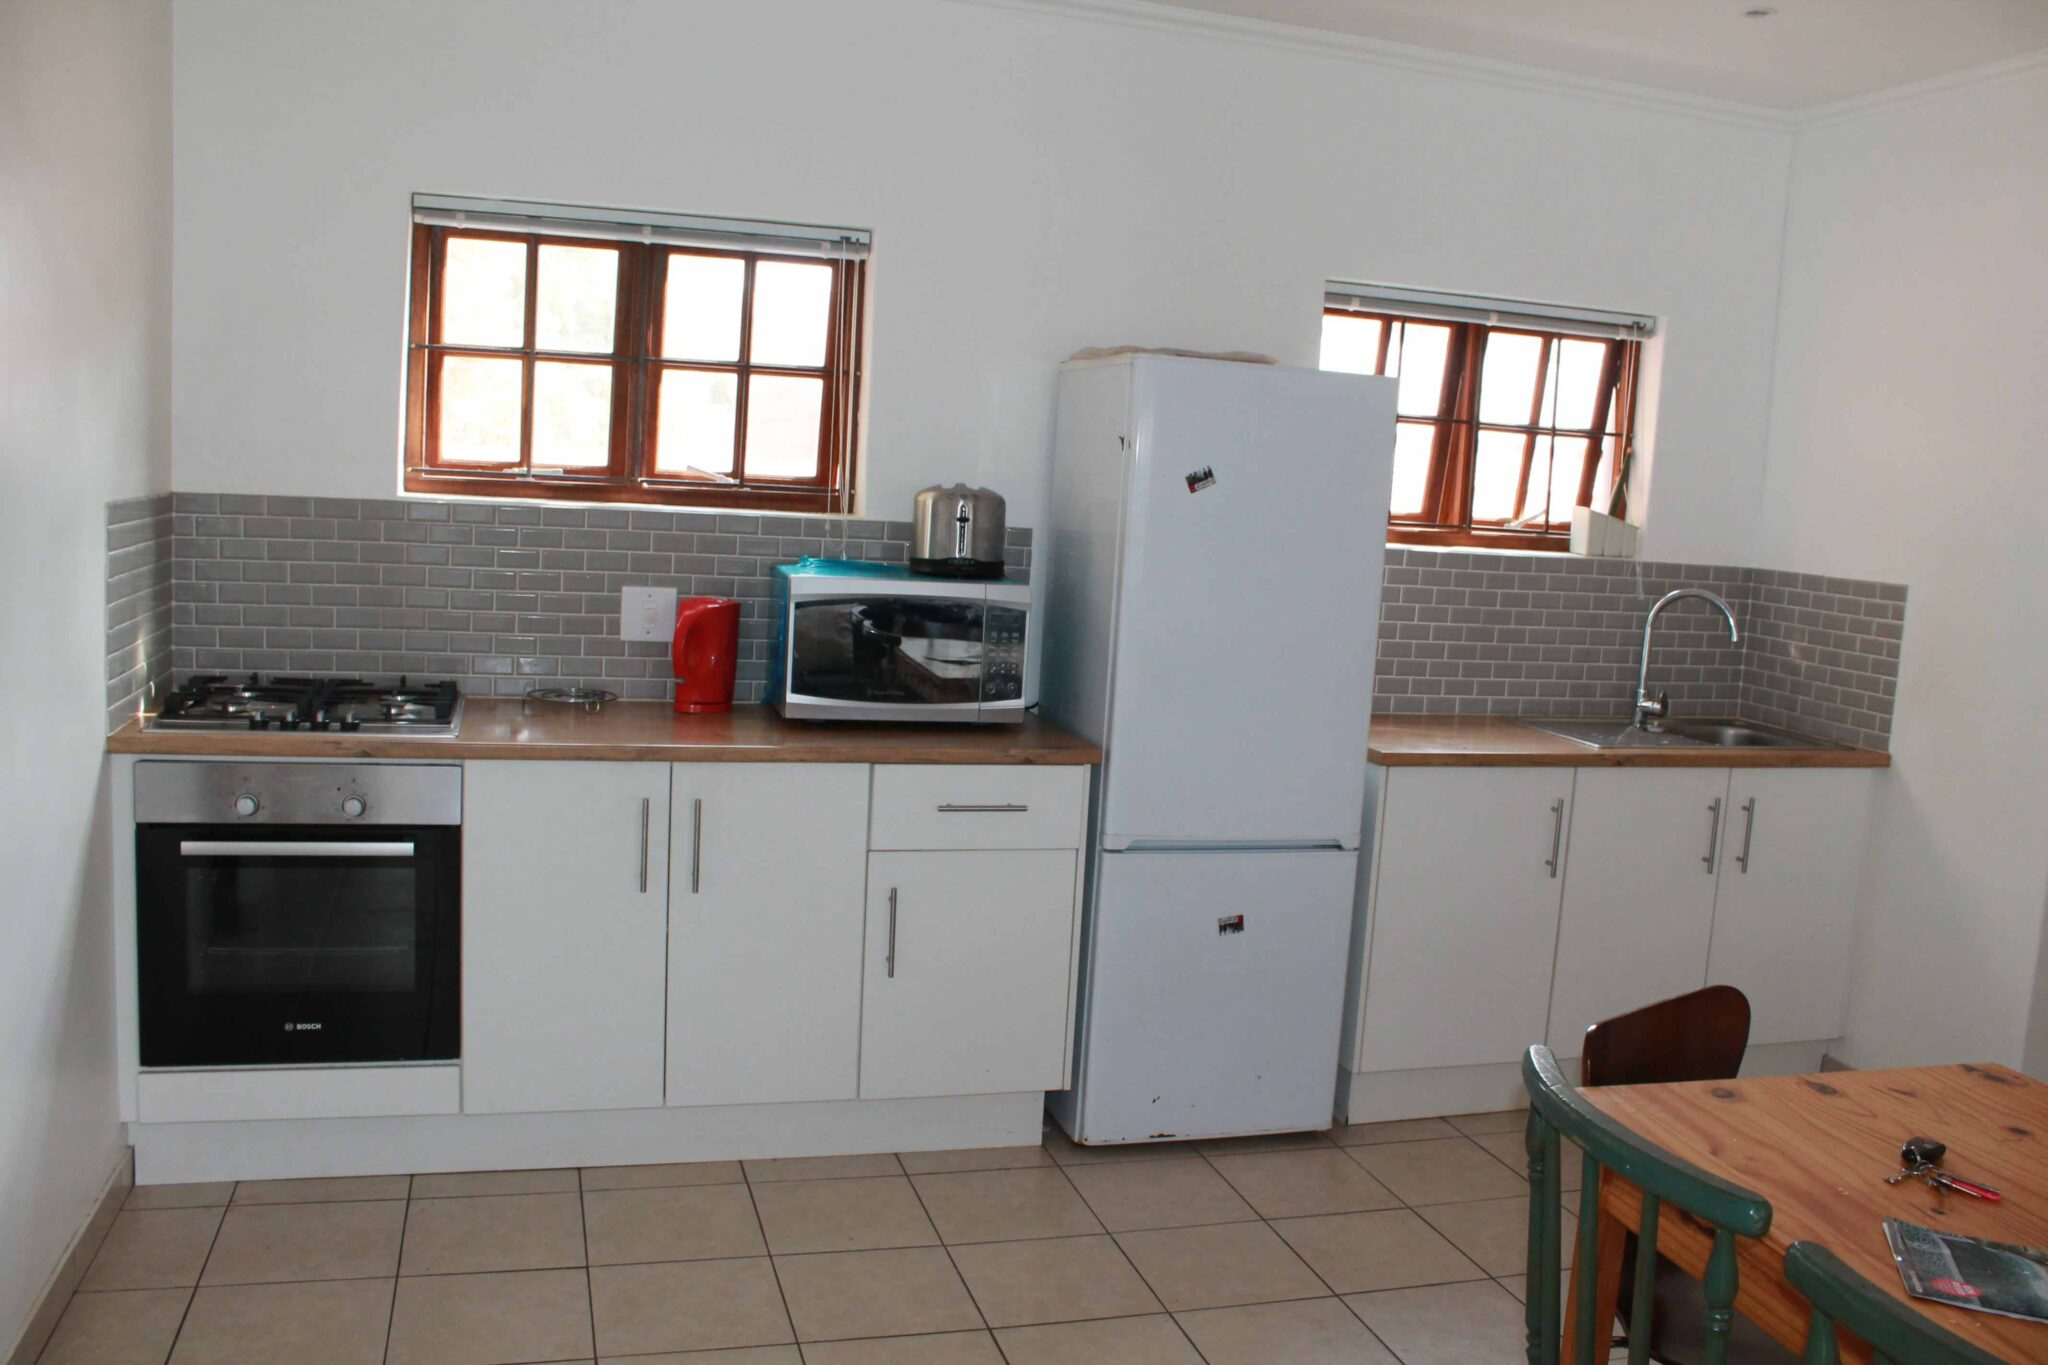 Project with Enviro Homes in Parkwood, Johannesburg 6